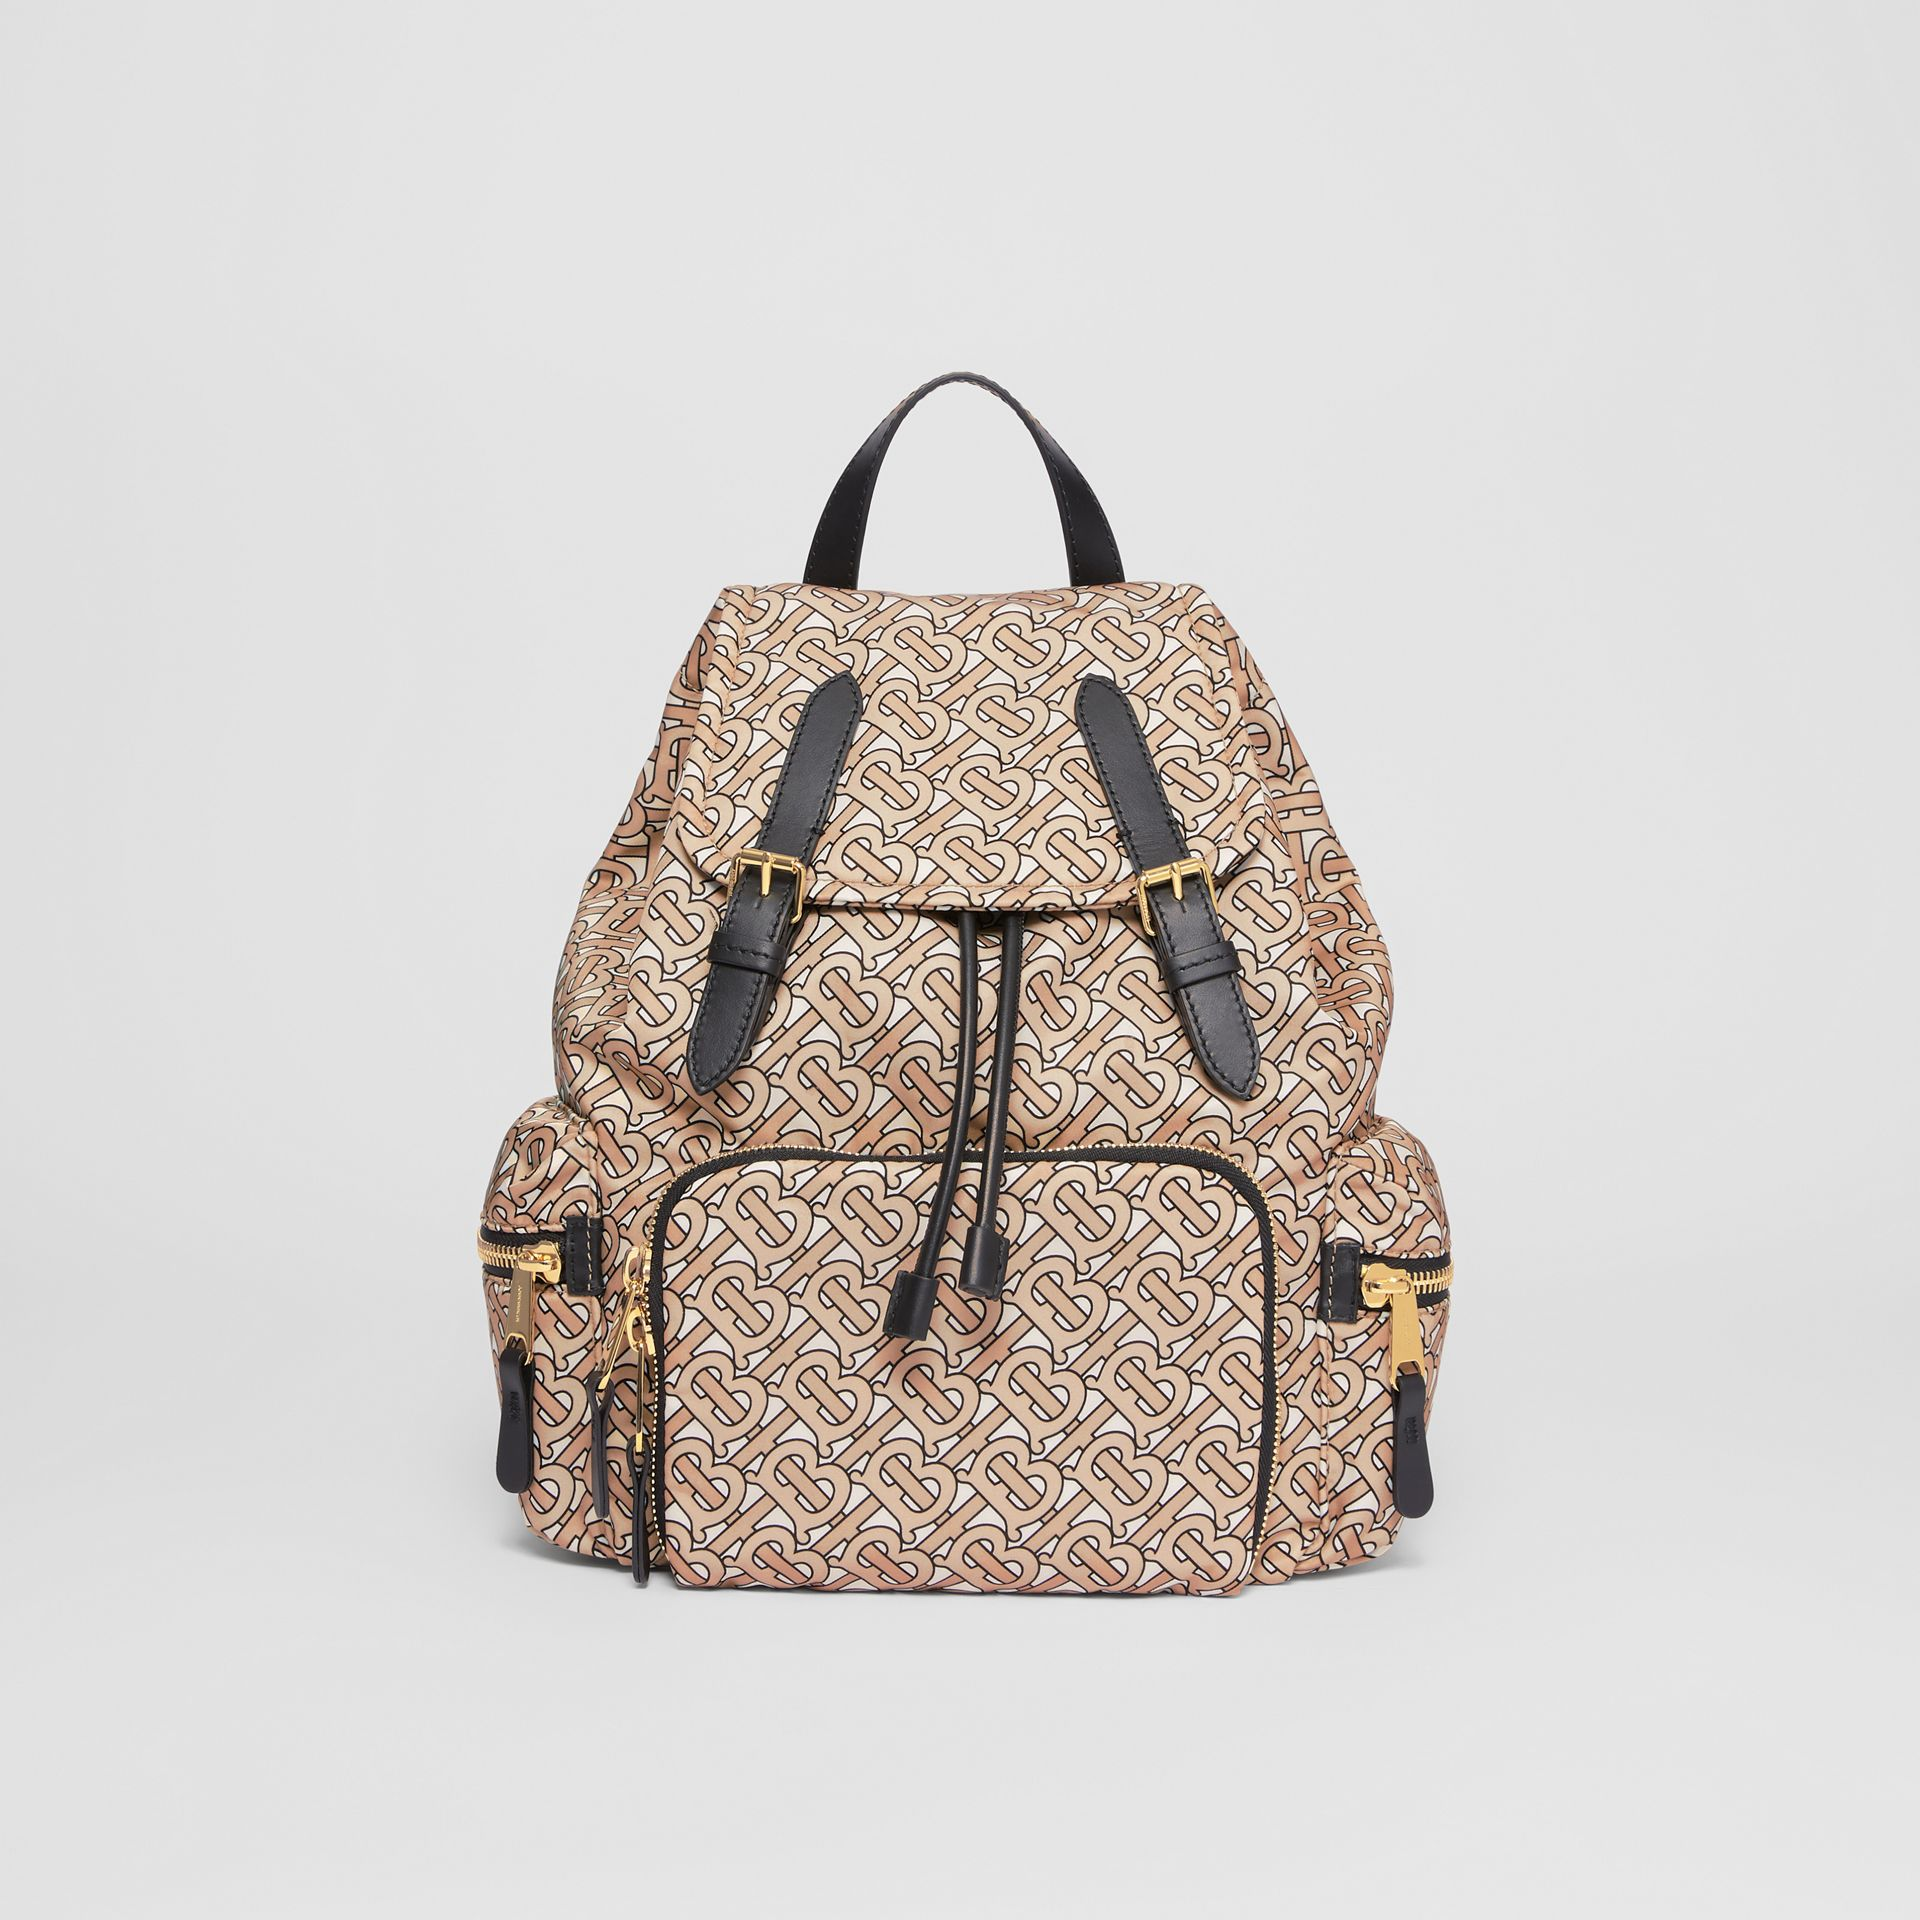 Sac The Rucksack moyen en nylon Monogram (Beige) - Femme | Burberry Canada - photo de la galerie 0